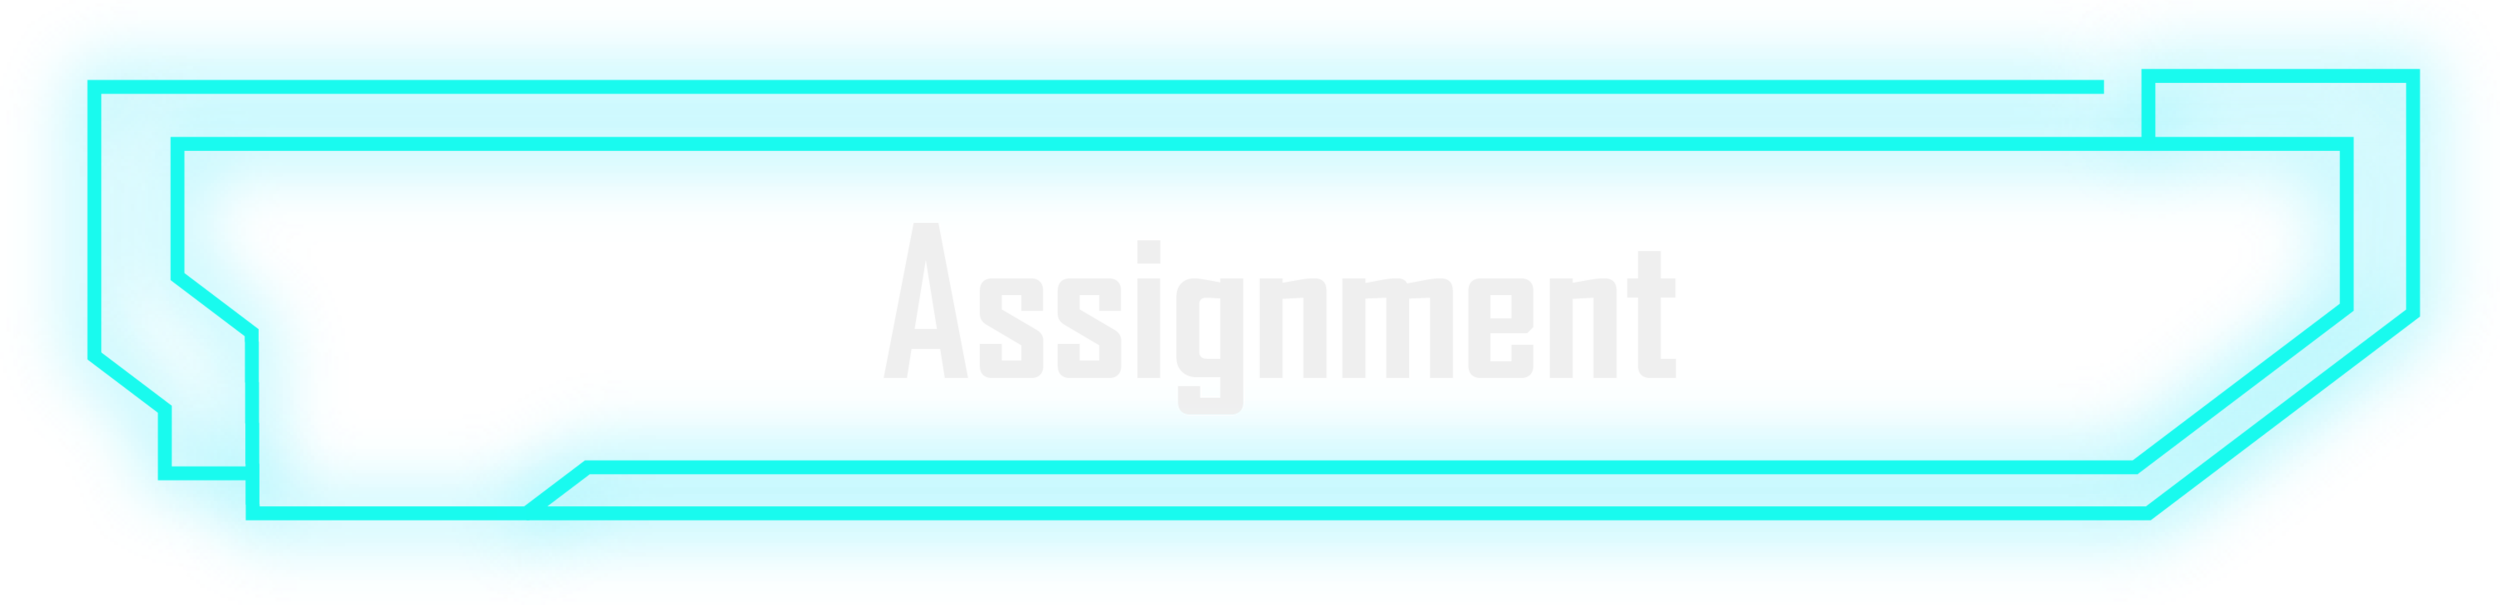 Assignment-06.png